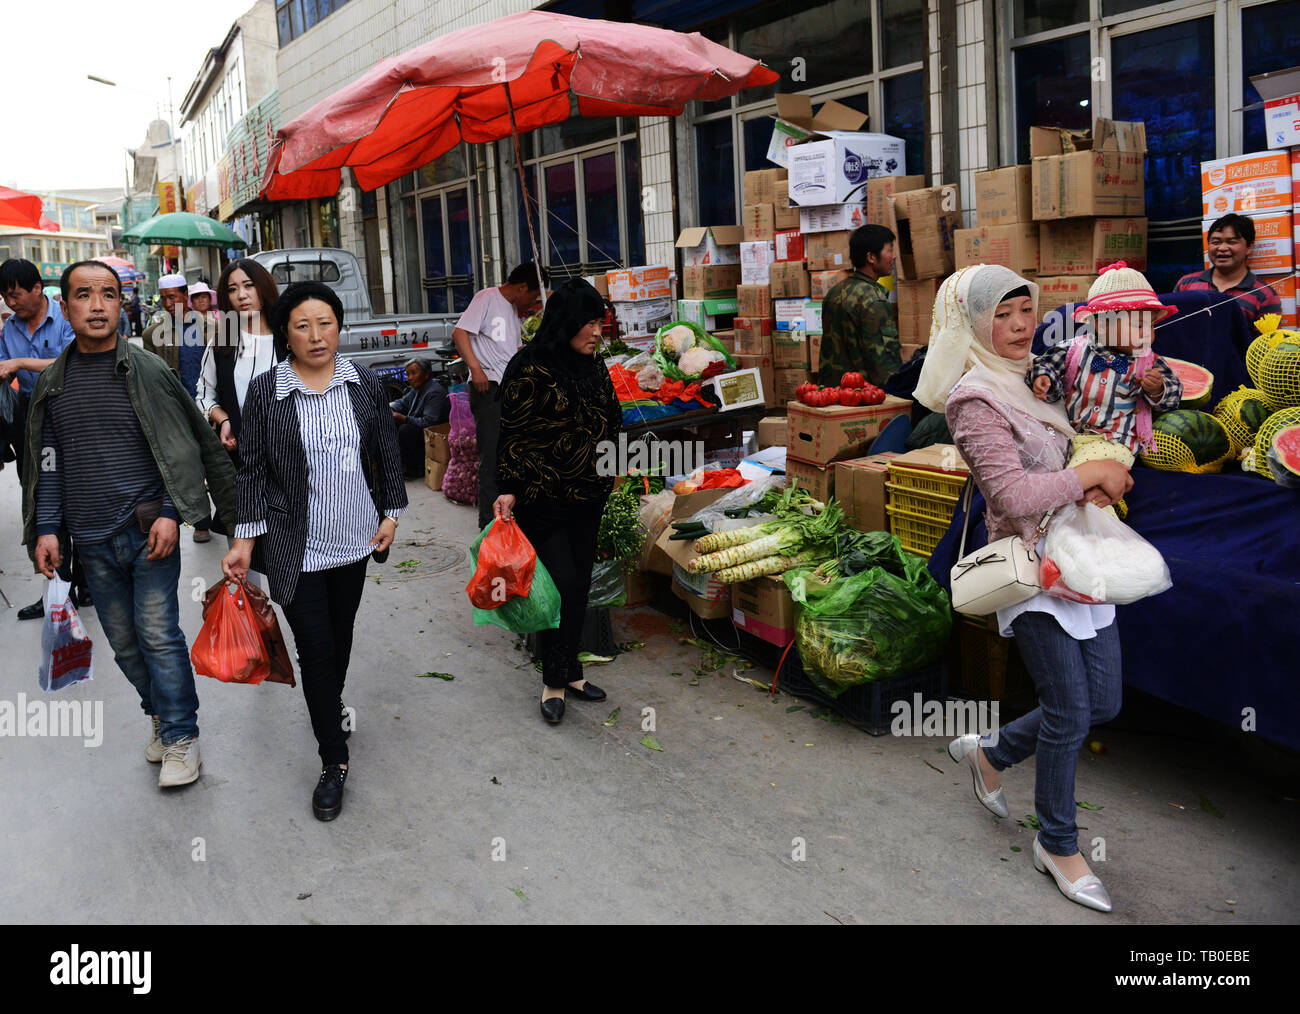 The vibrant market in Linxia, Gansu province, China. - Stock Image